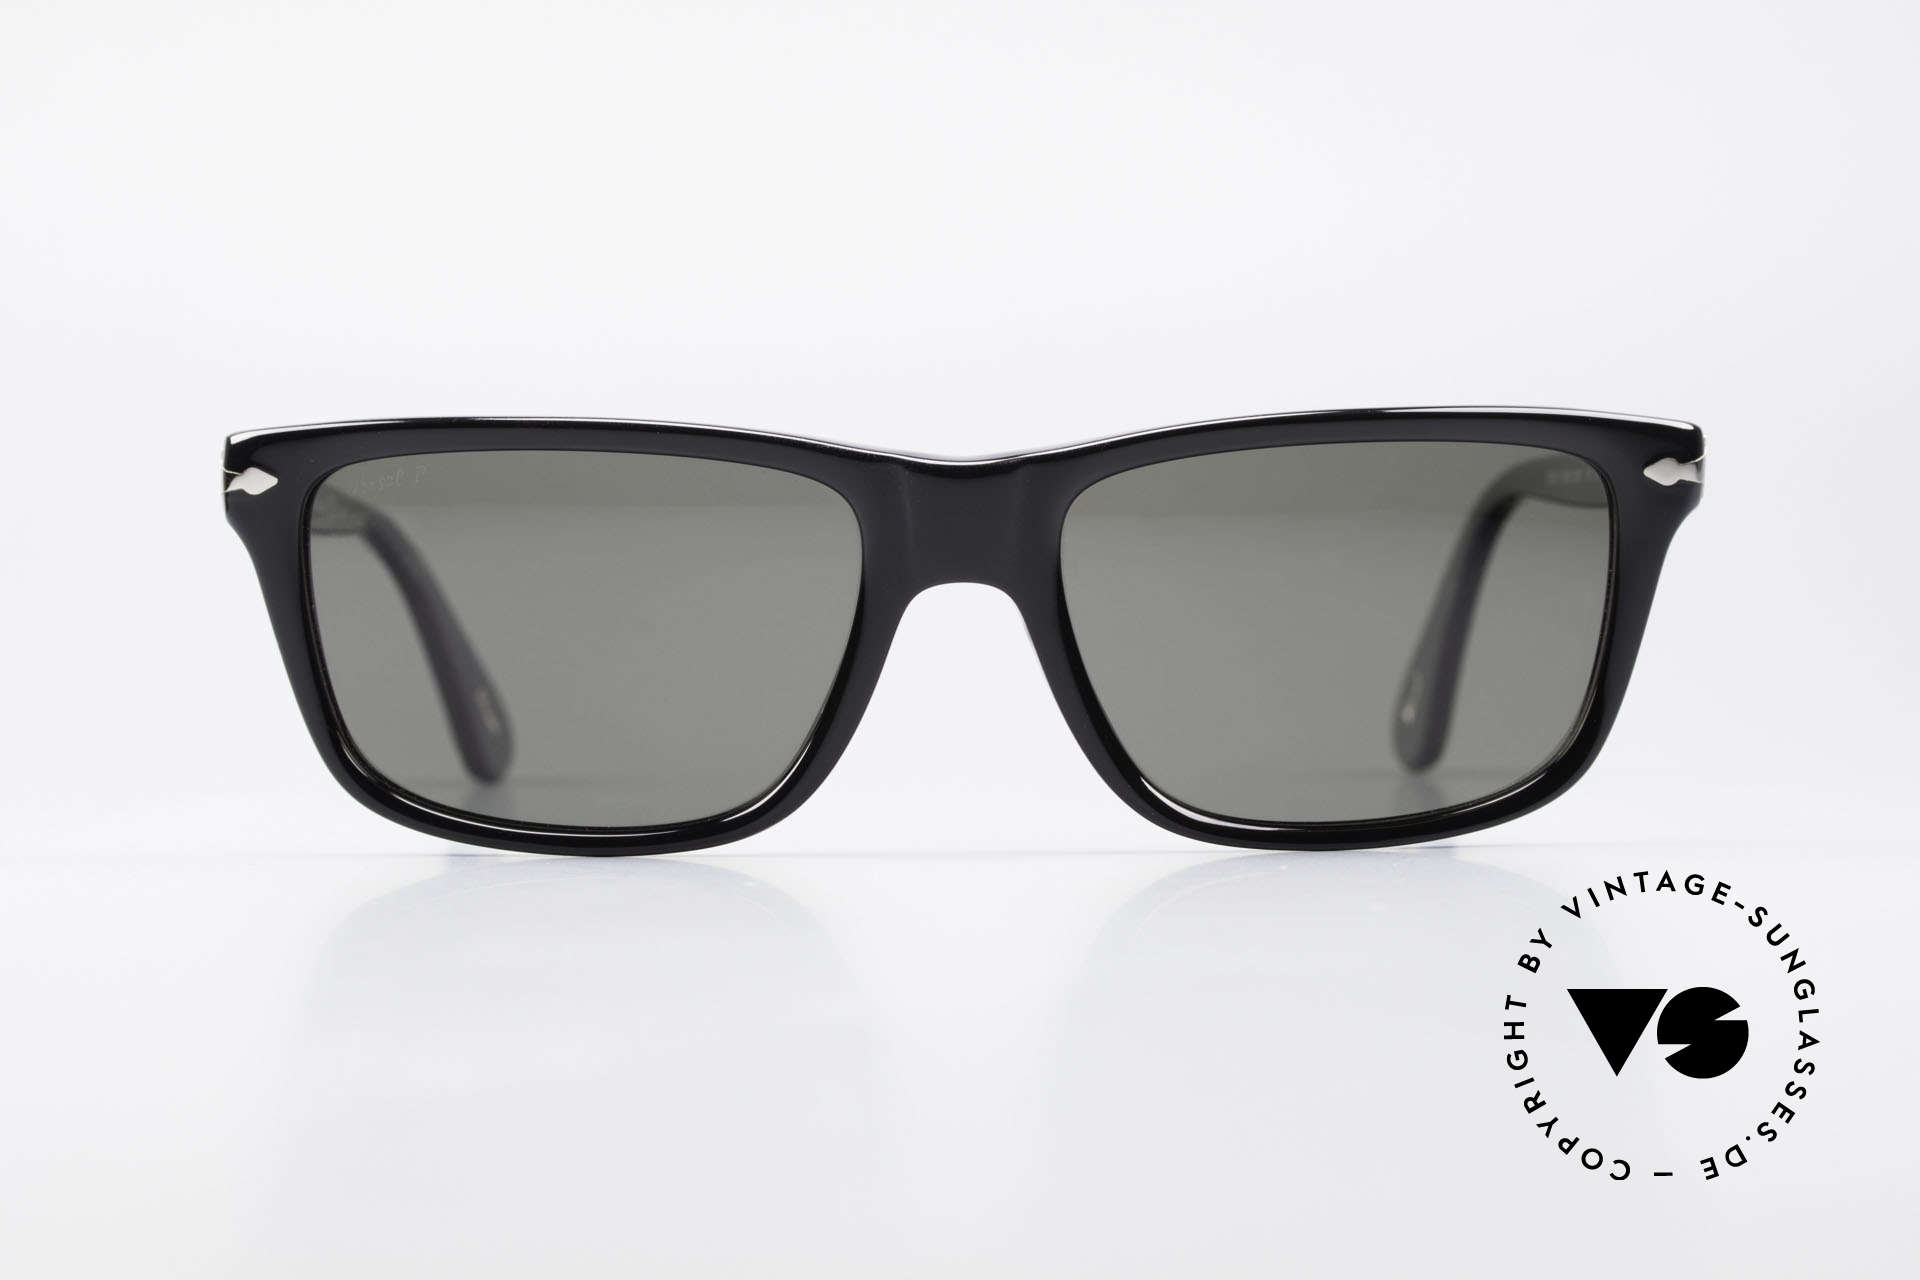 Persol 3026 Classic Sunglasses Polarized, classic timeless design and best craftsmanship, Made for Men and Women